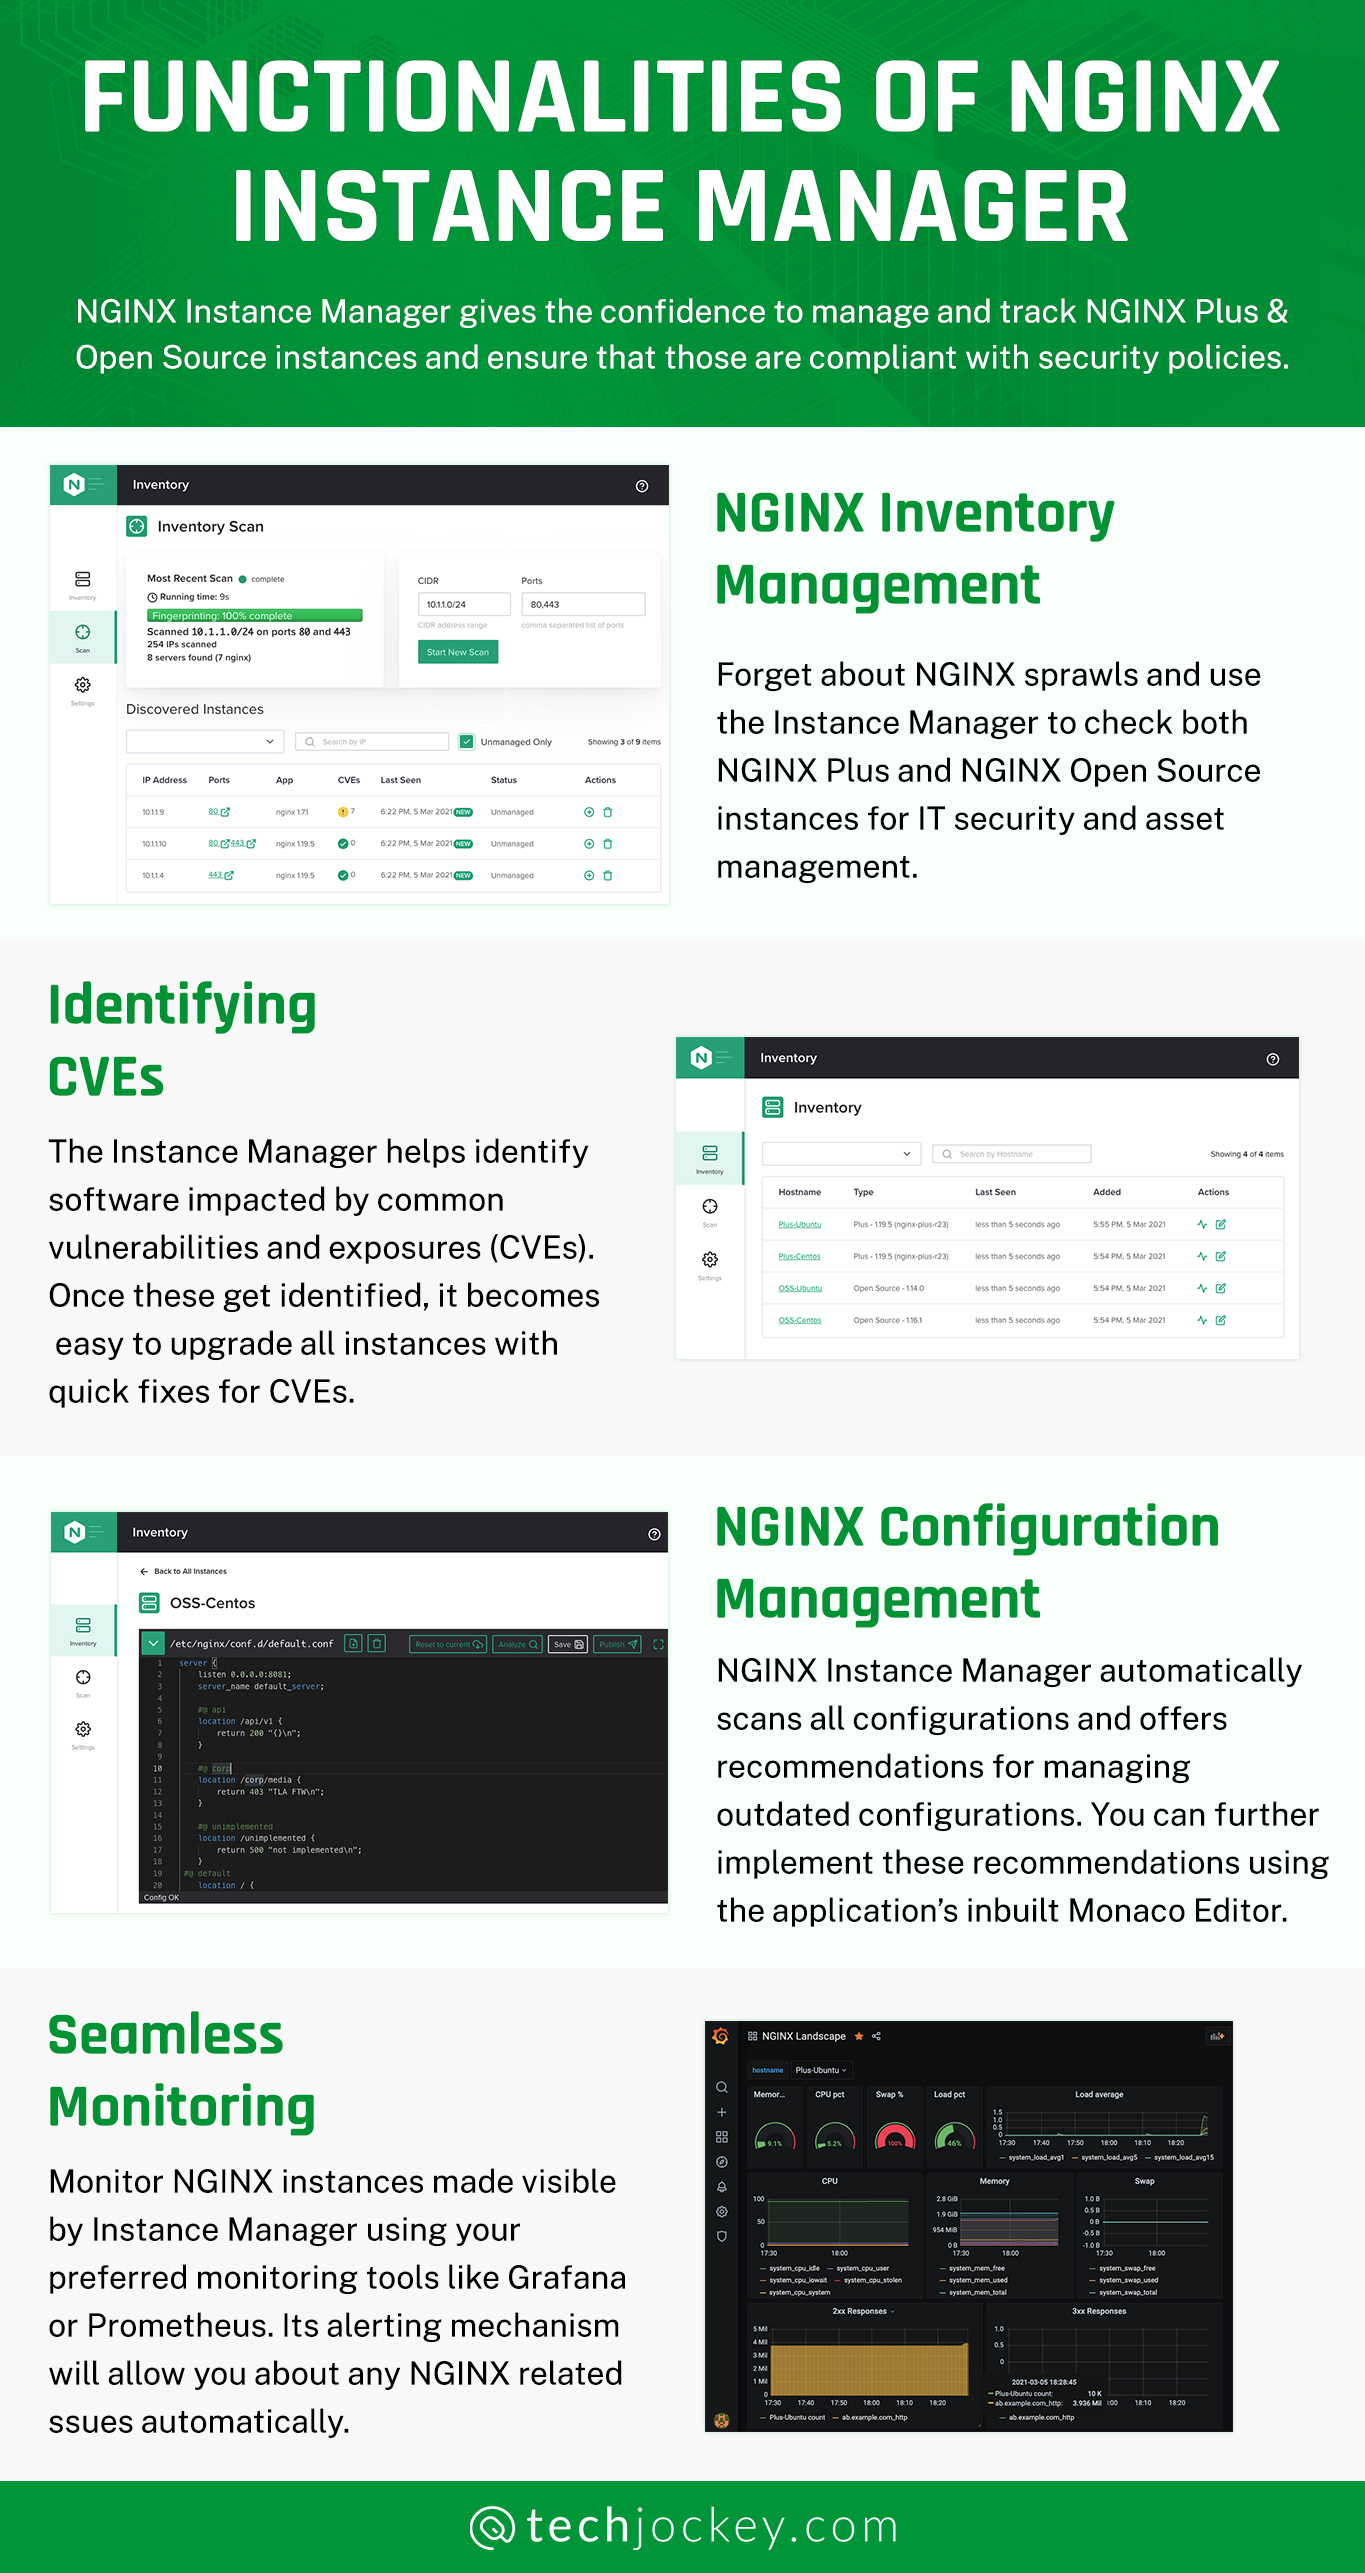 Functionalities of NGINX Instance Manager